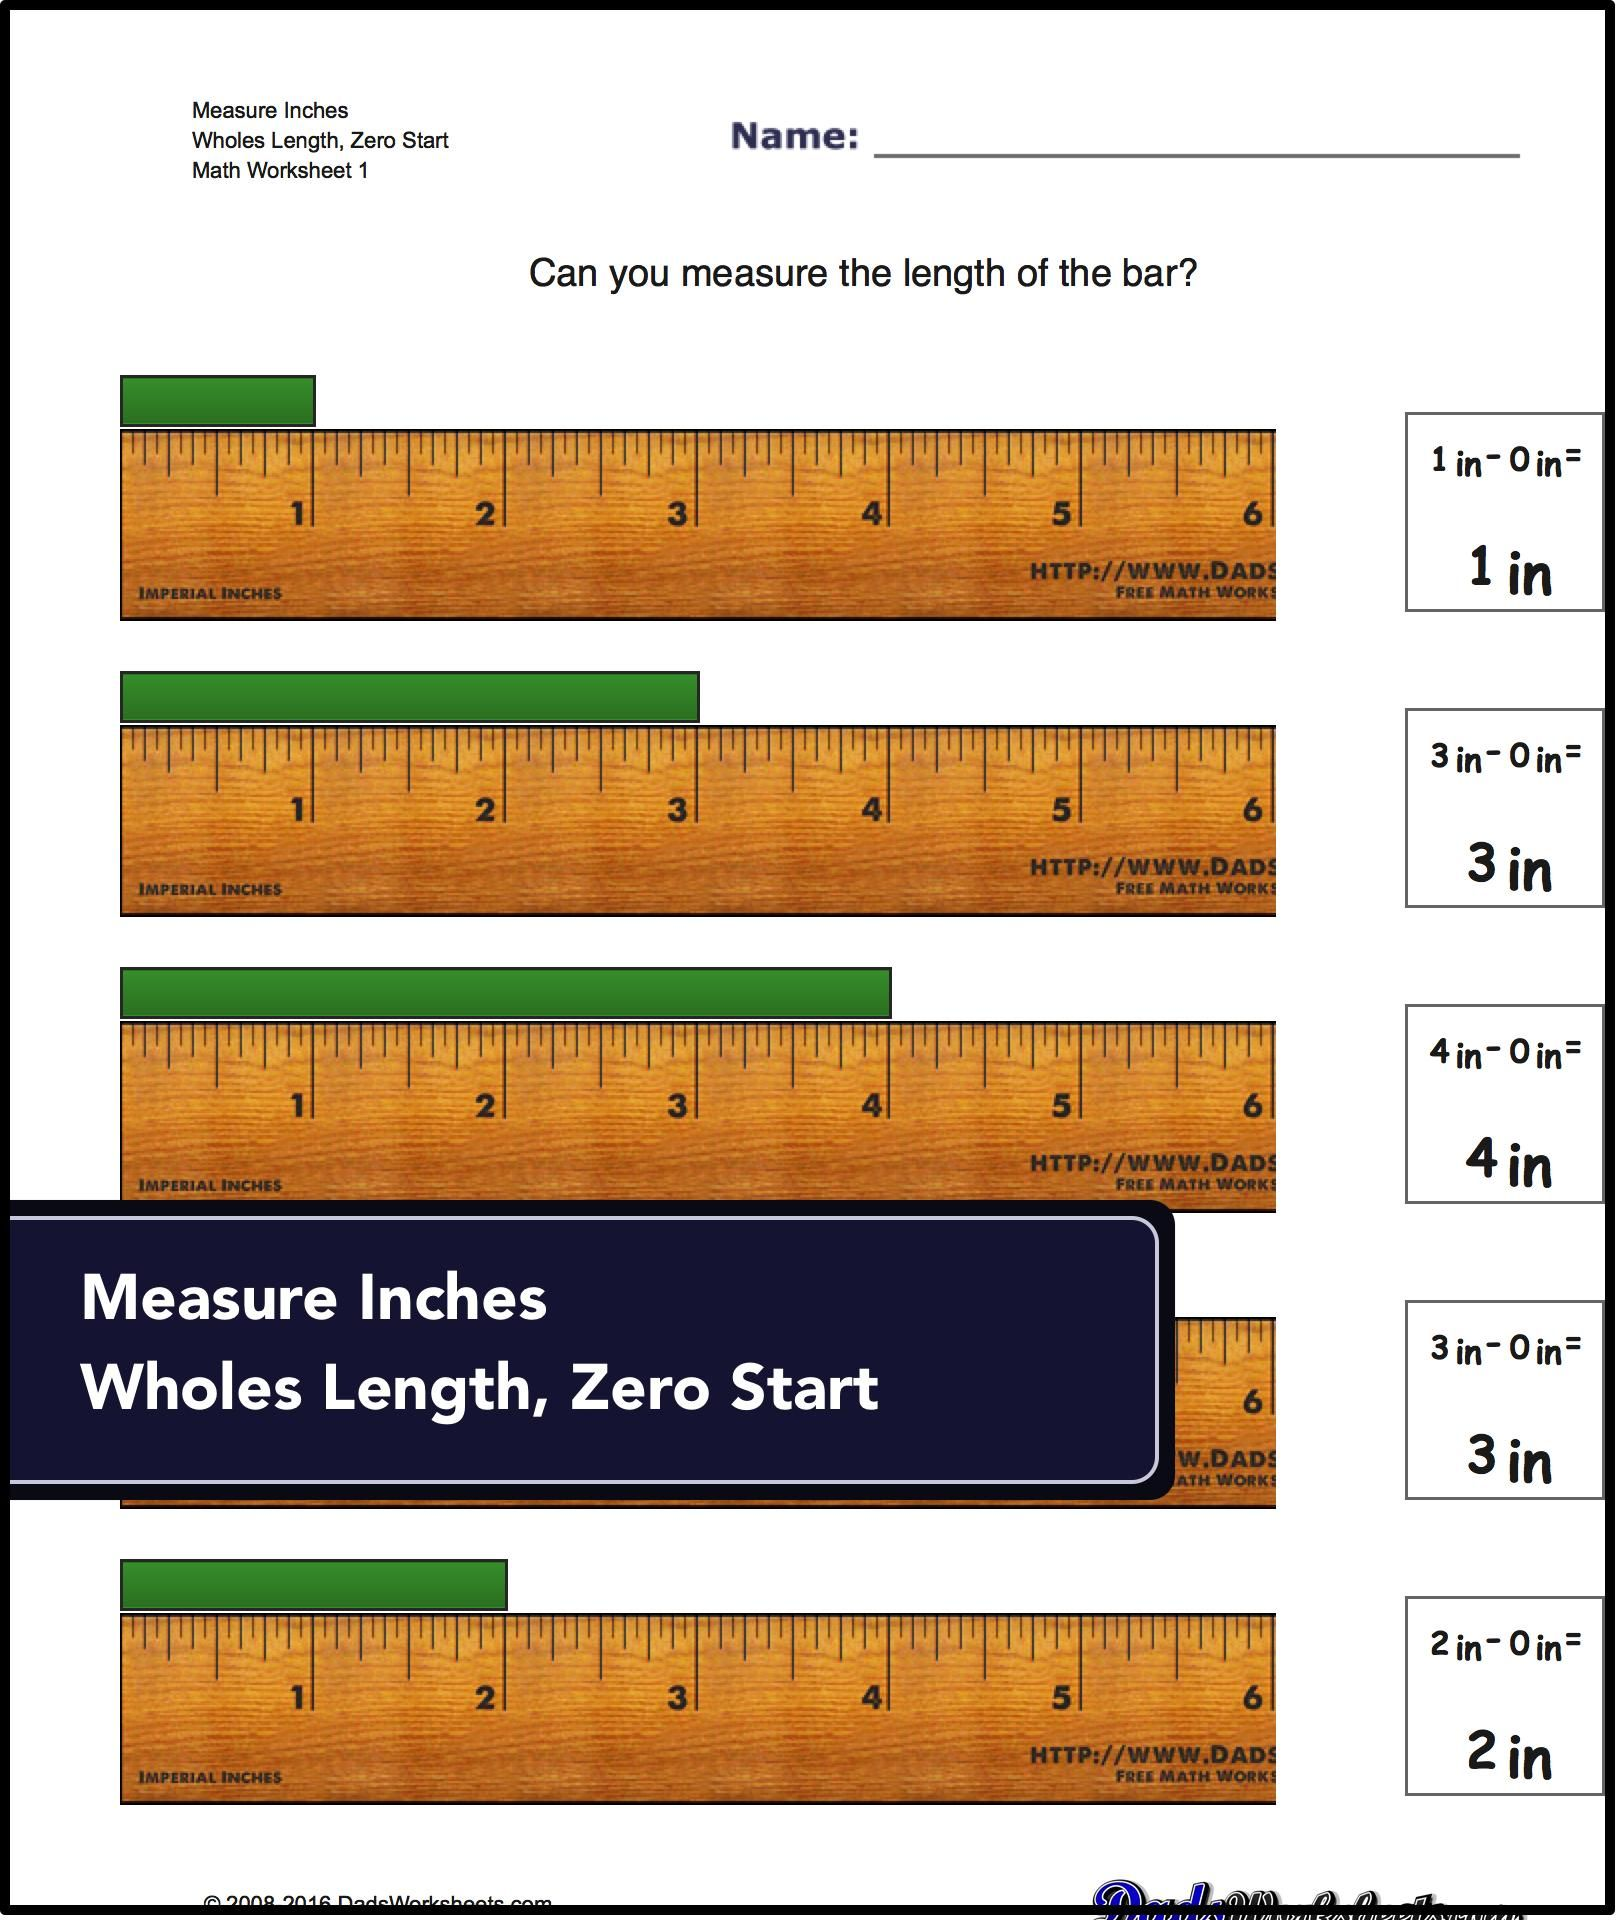 Measurement Conversion Worksheet